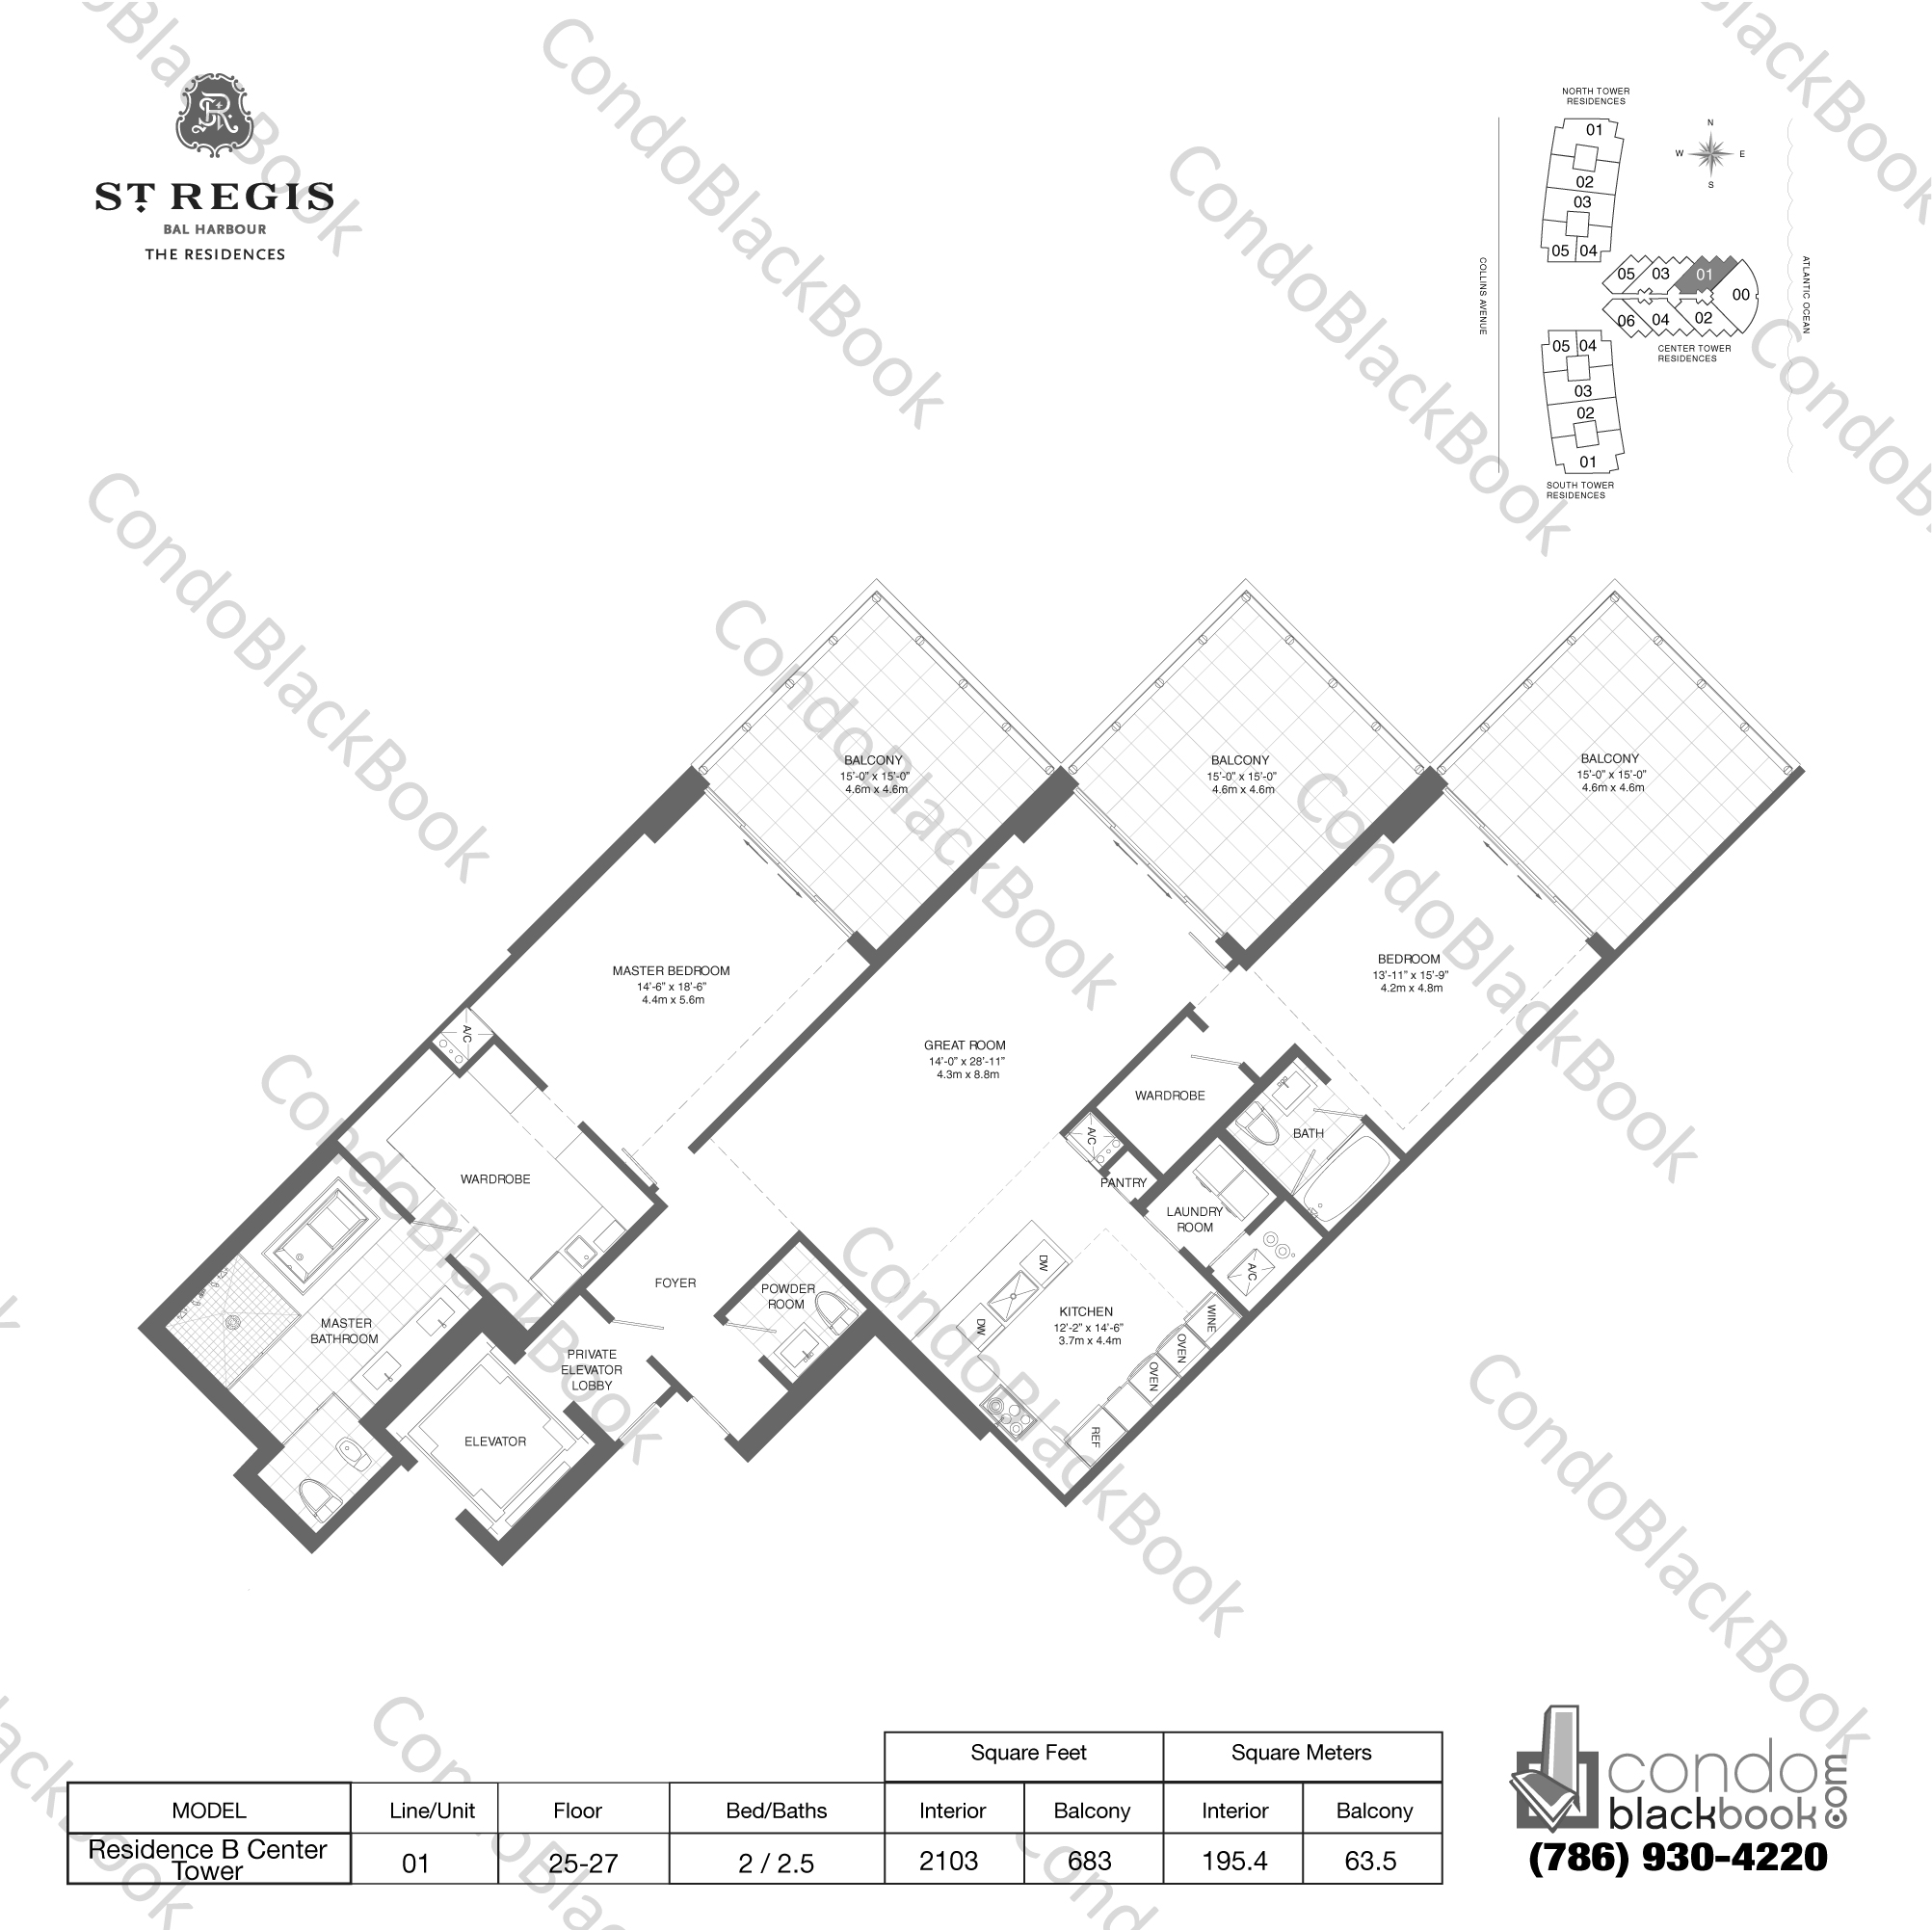 Office Electrical Plan in addition Bedroom layouts in addition 2015 Yetti Xtreme 8x16 Fish House Stock Number 1402 besides Information together with A1929535. on smoke detector floor plan